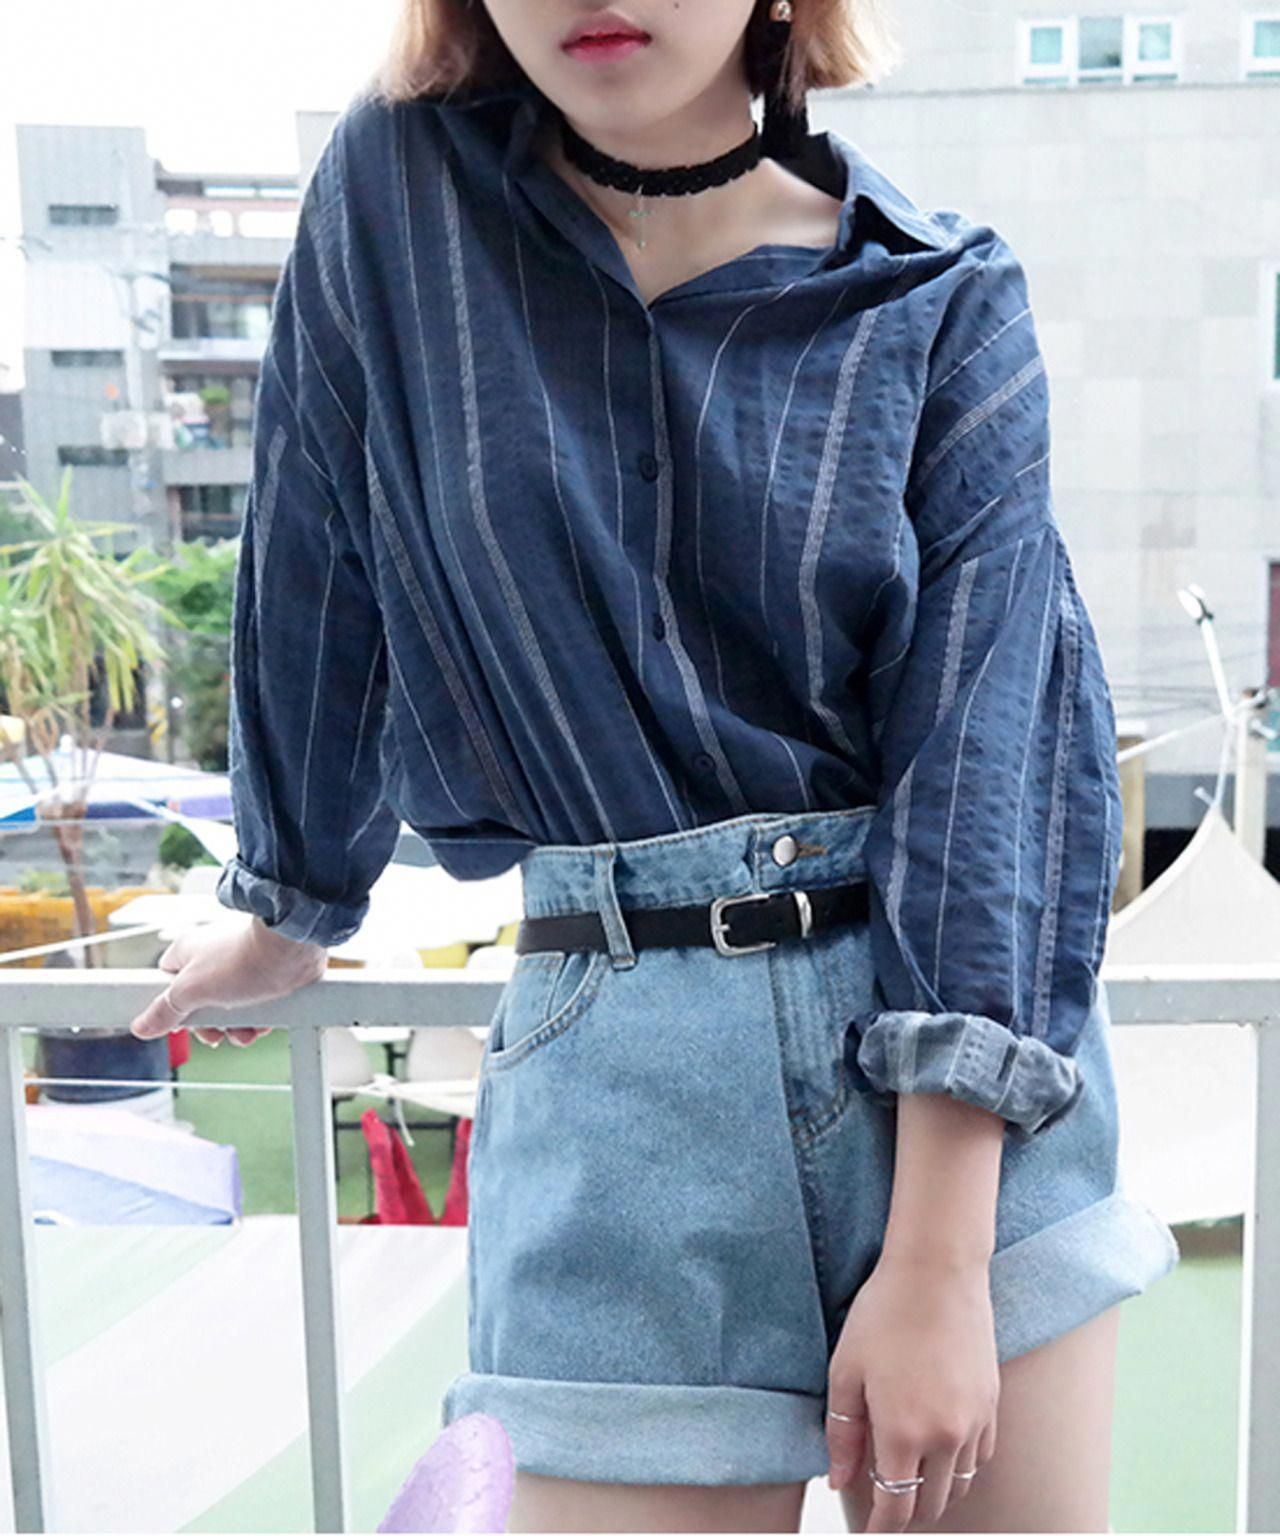 Korean Fashion Casual Spring Chic Outfit #KoreanFashion